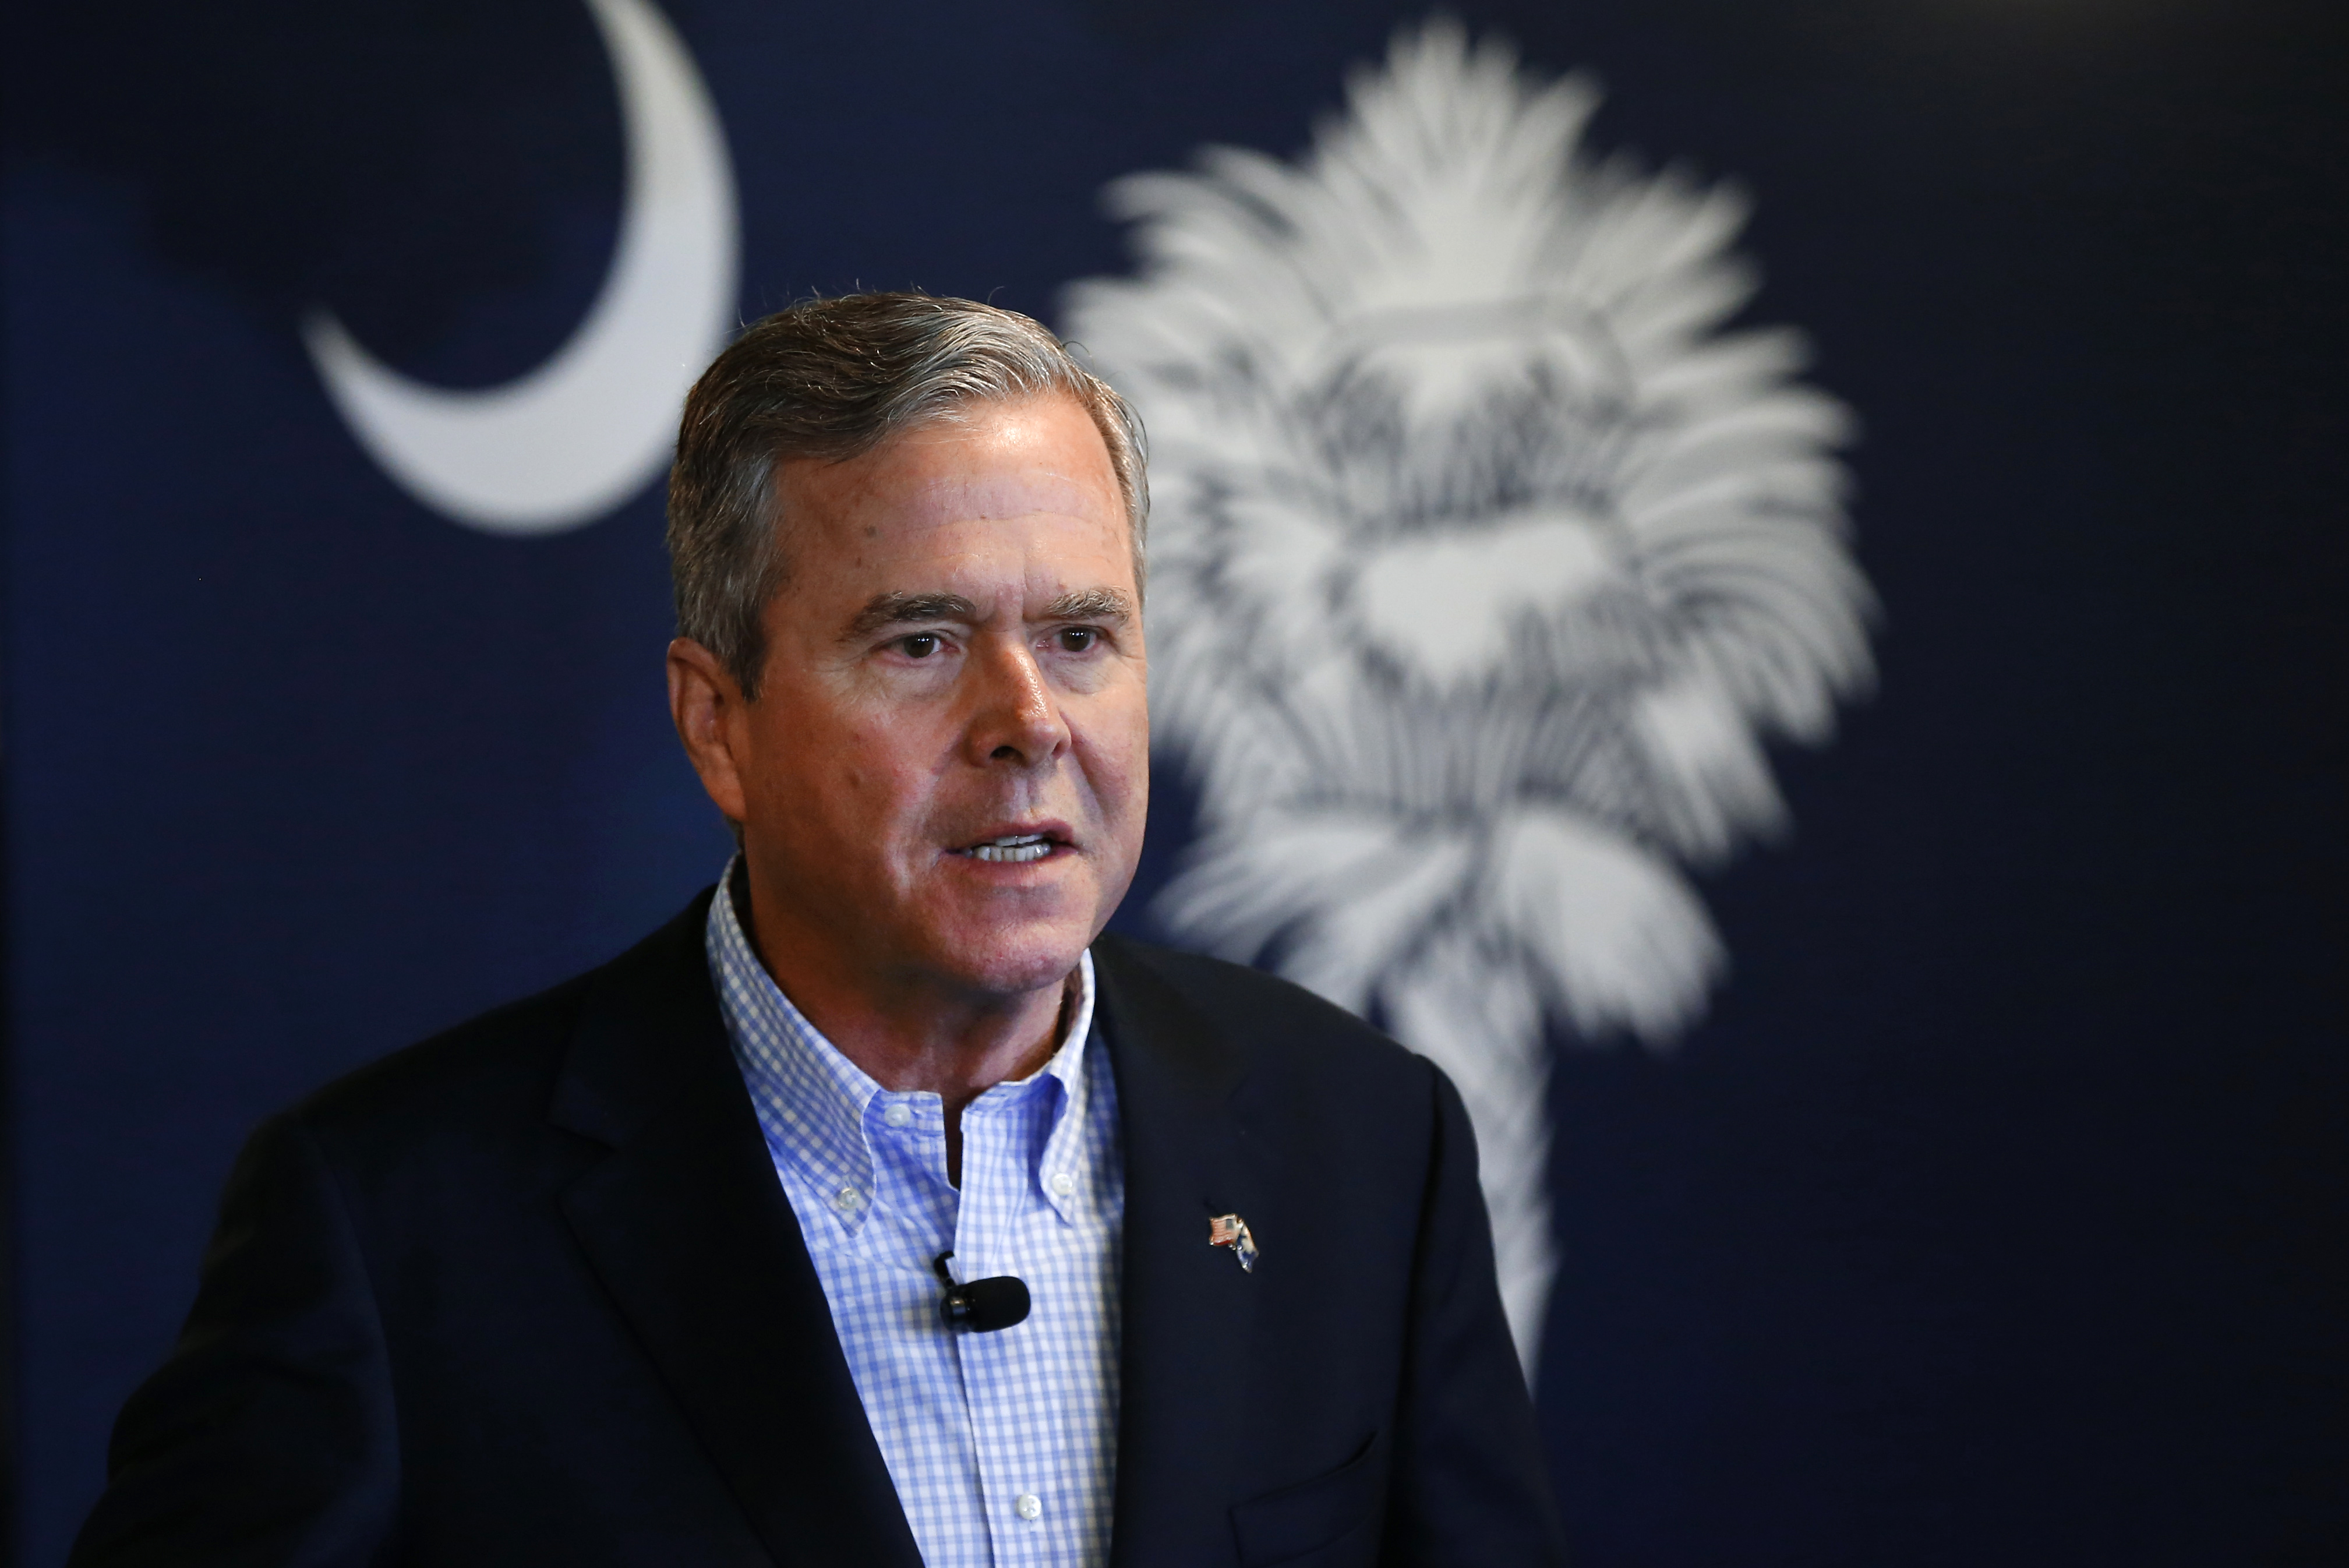 Republican presidential candidate, former Florida Gov. Jeb Bush speaks during a campaign stop at Wade's Restaurant, Friday, Feb. 19, 2016 in Spartanburg, S.C. (AP Photo/Paul Sancya)